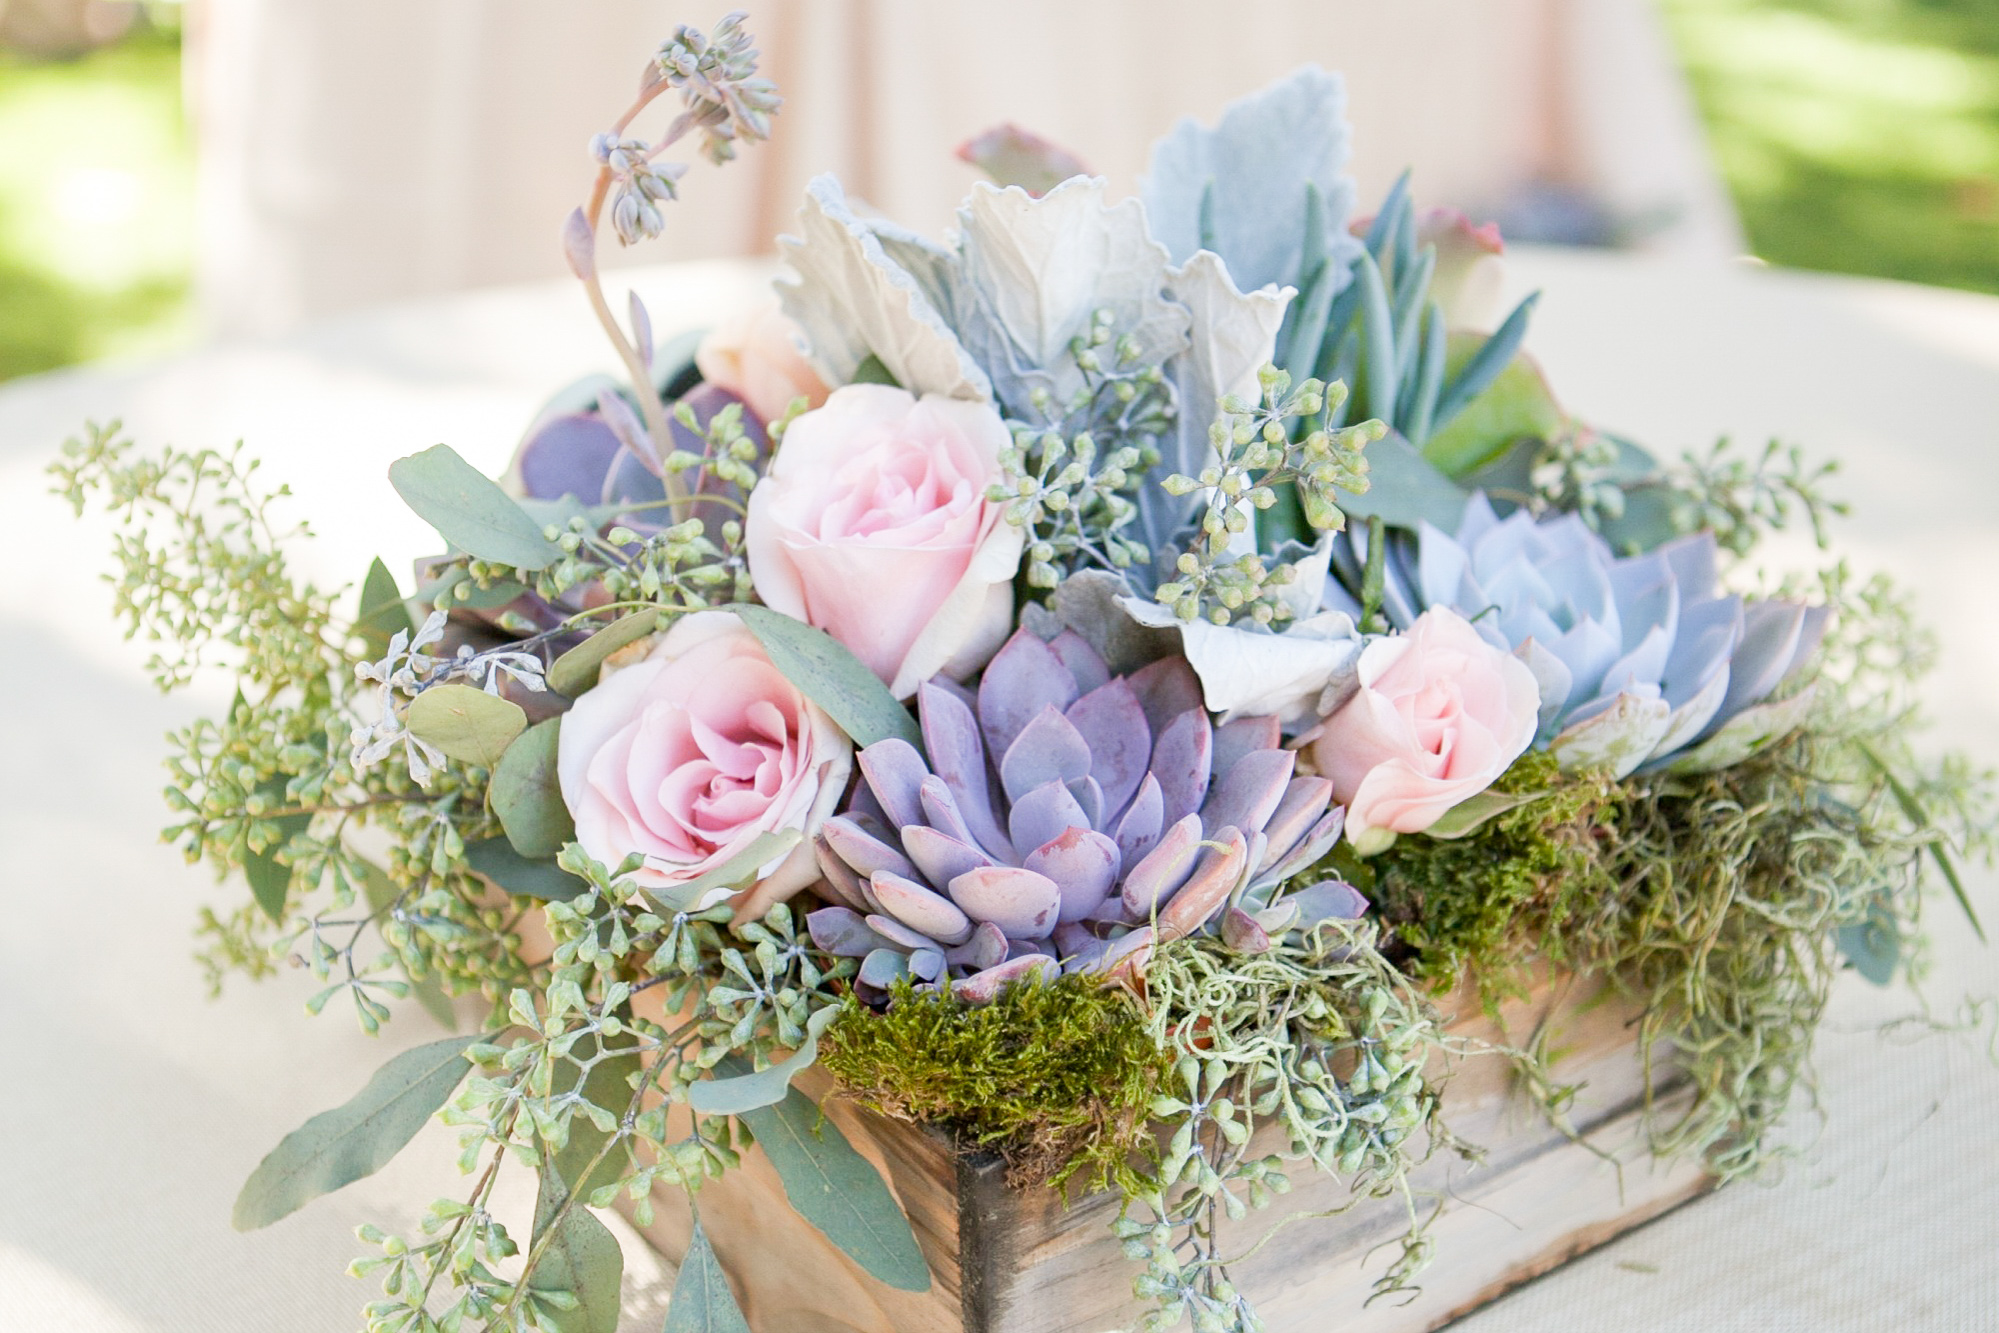 Presenting our gorgeous pastel color palette ideas for a fairytale wedding inspiration!